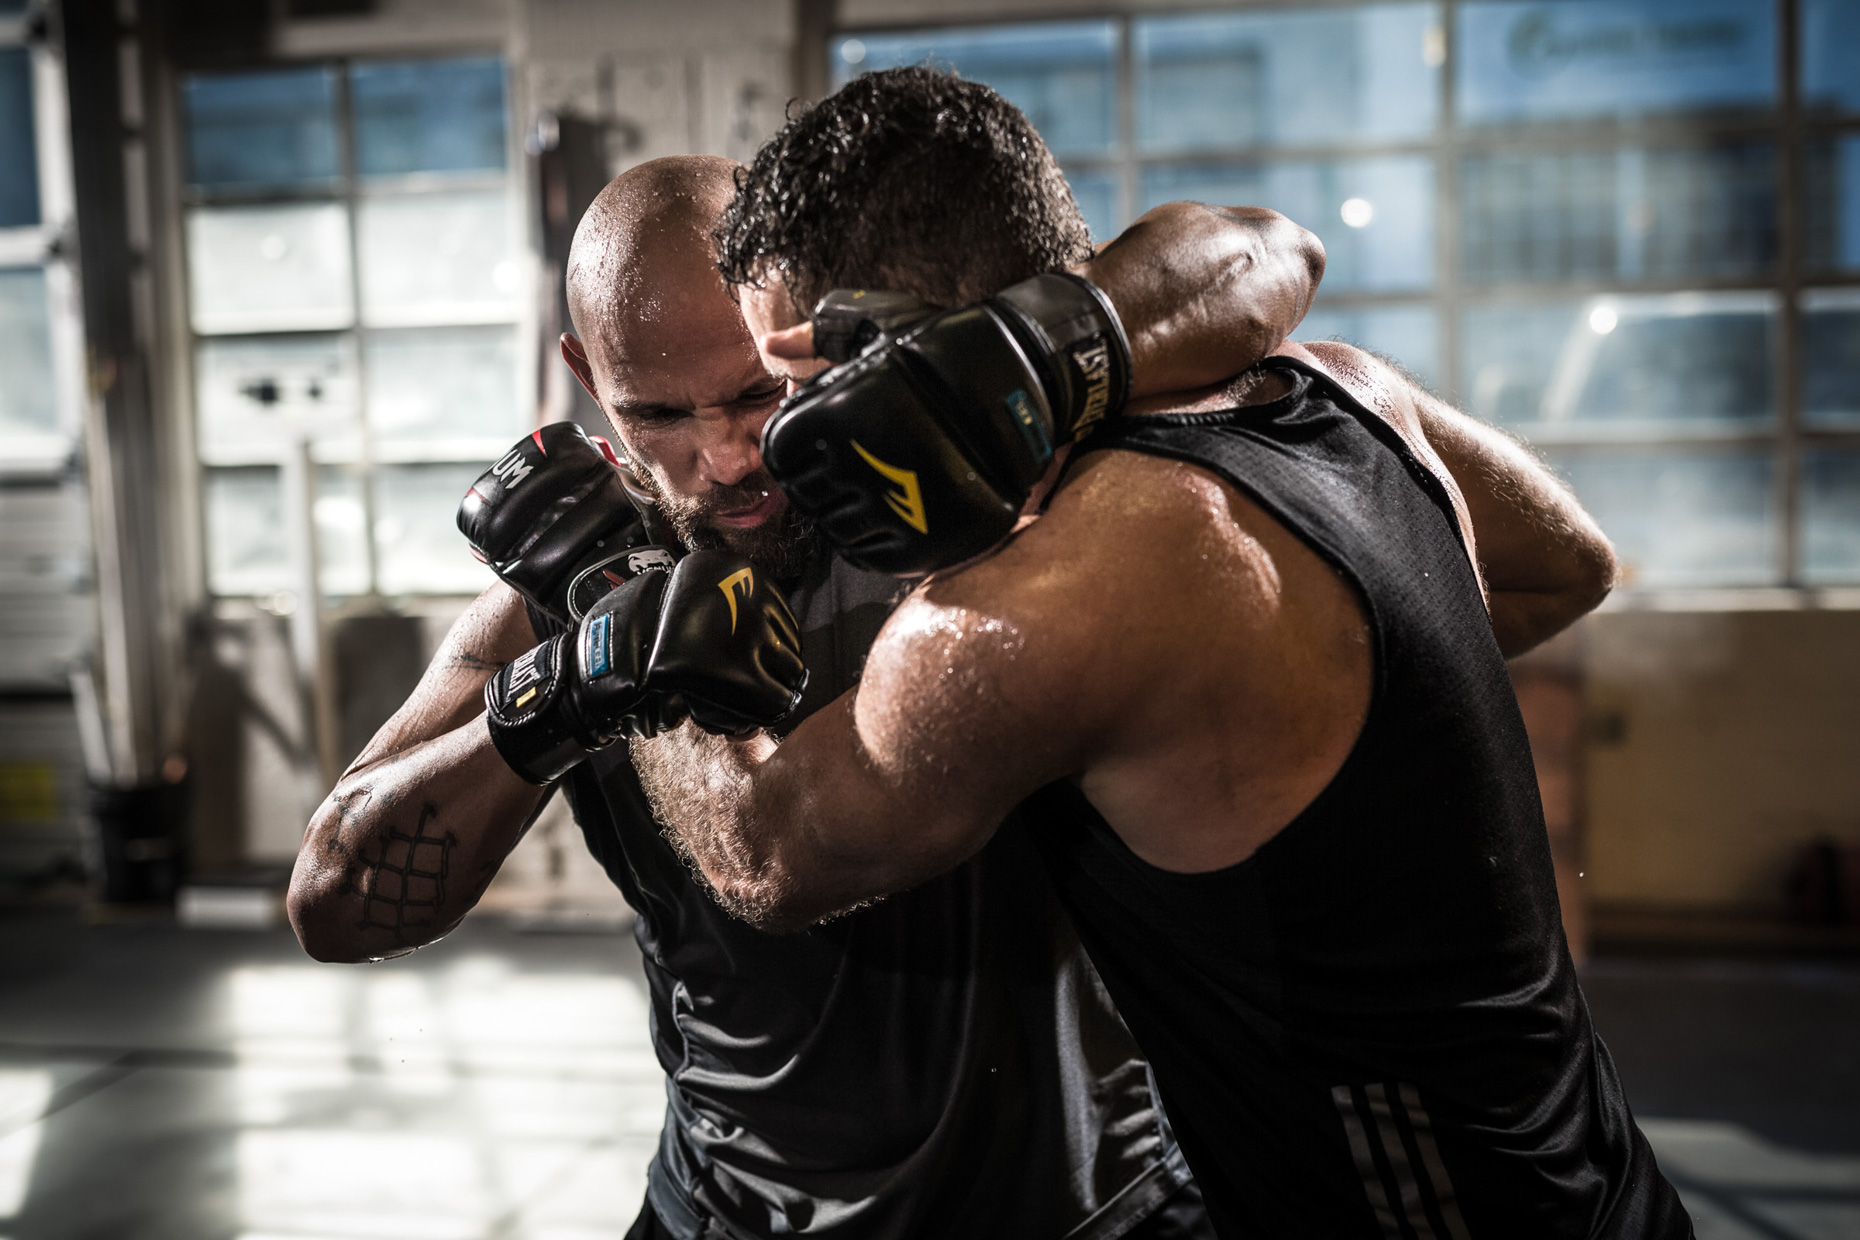 MMA fighters Will Hatcher and Jose Rodriguez train for sport photographer Andy Batt.